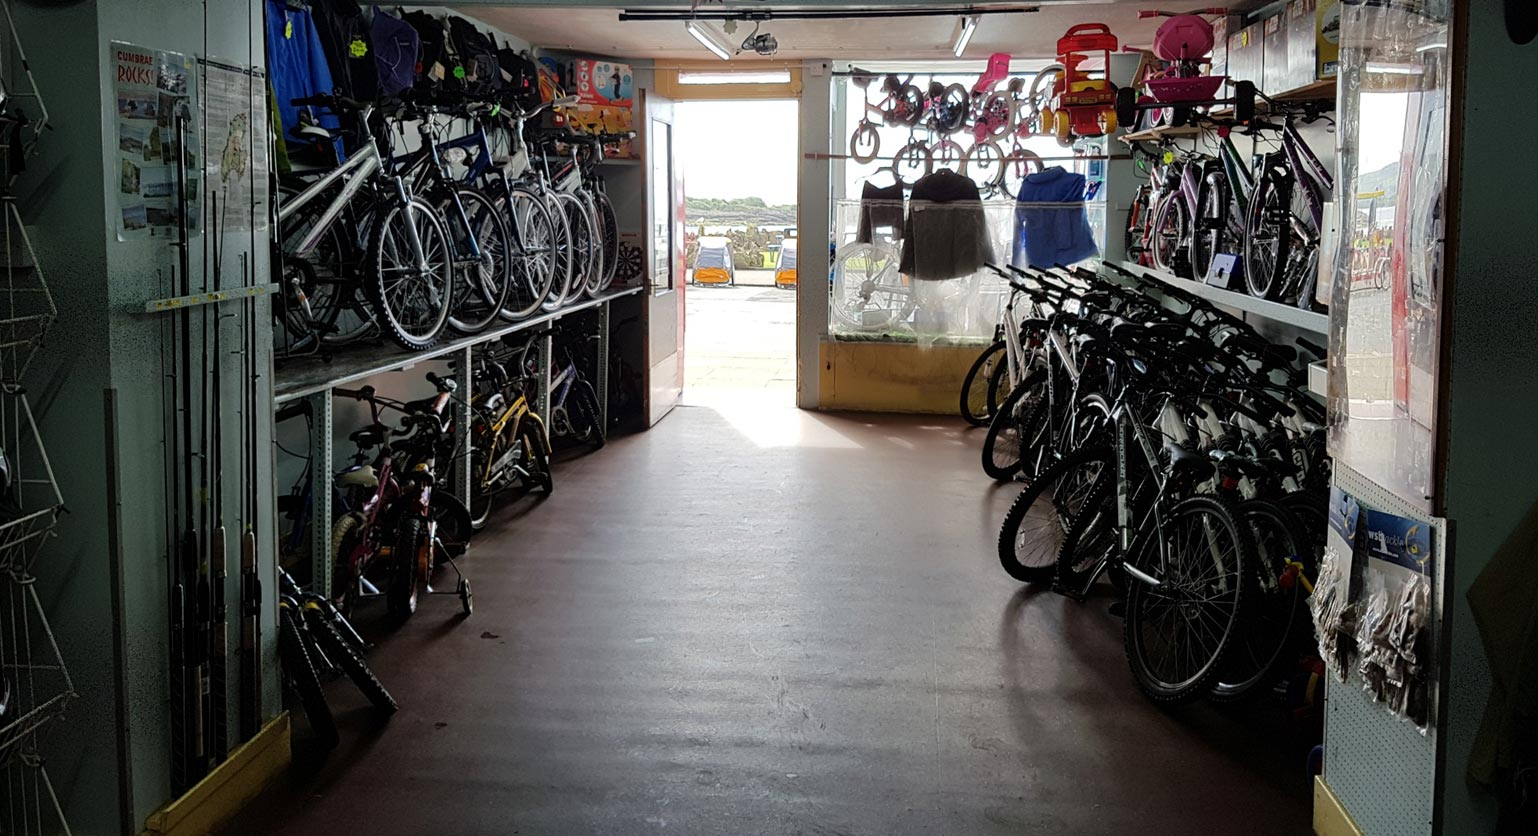 Bikes at Mapes of Millport